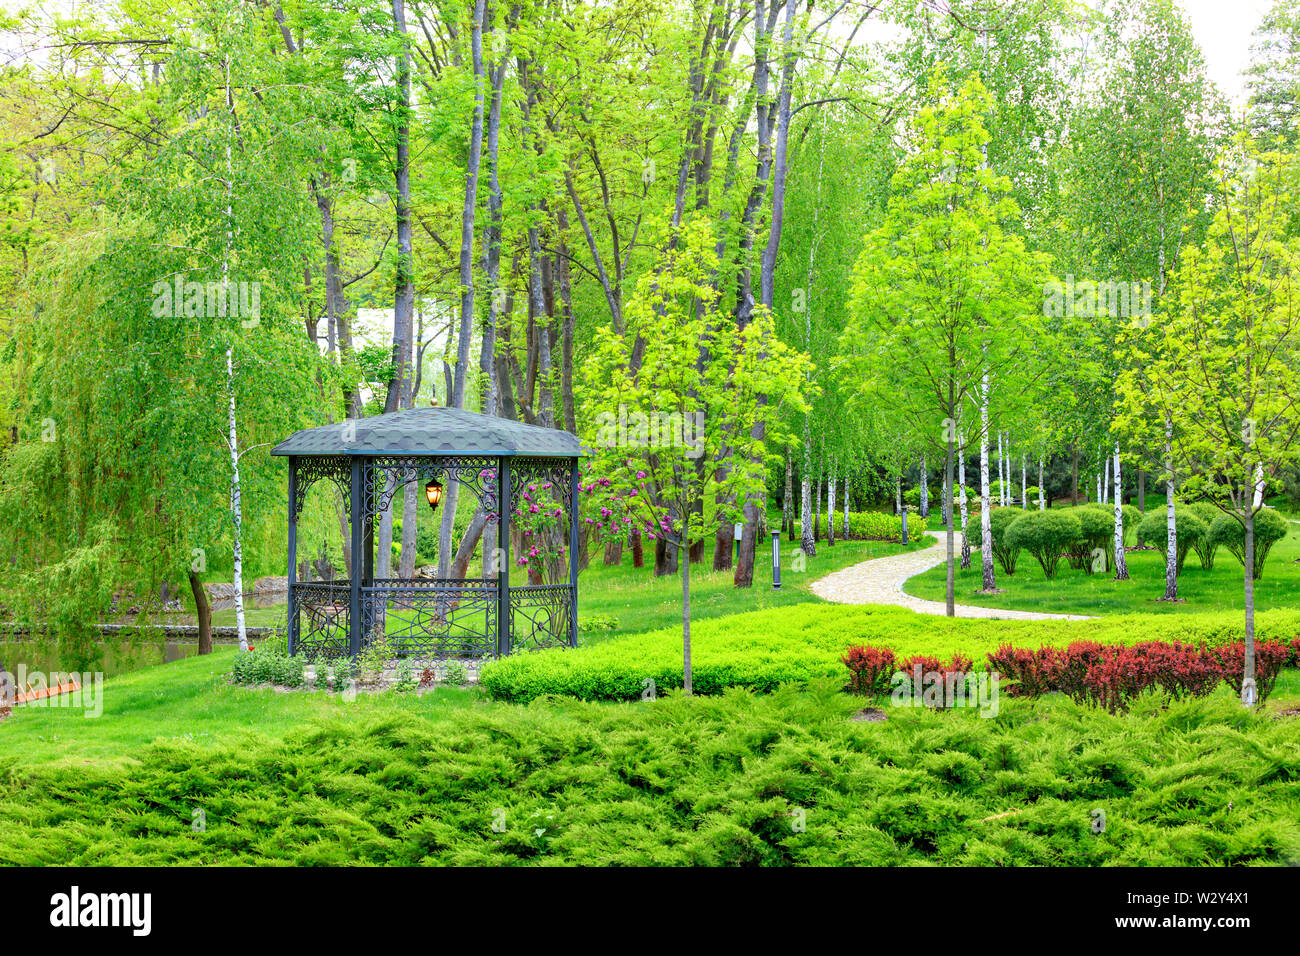 An openwork metal gazebo with a soft lamp in the center stands on a green lawn with decorative flowers, near a paved path passing by, framed on all si - Stock Image